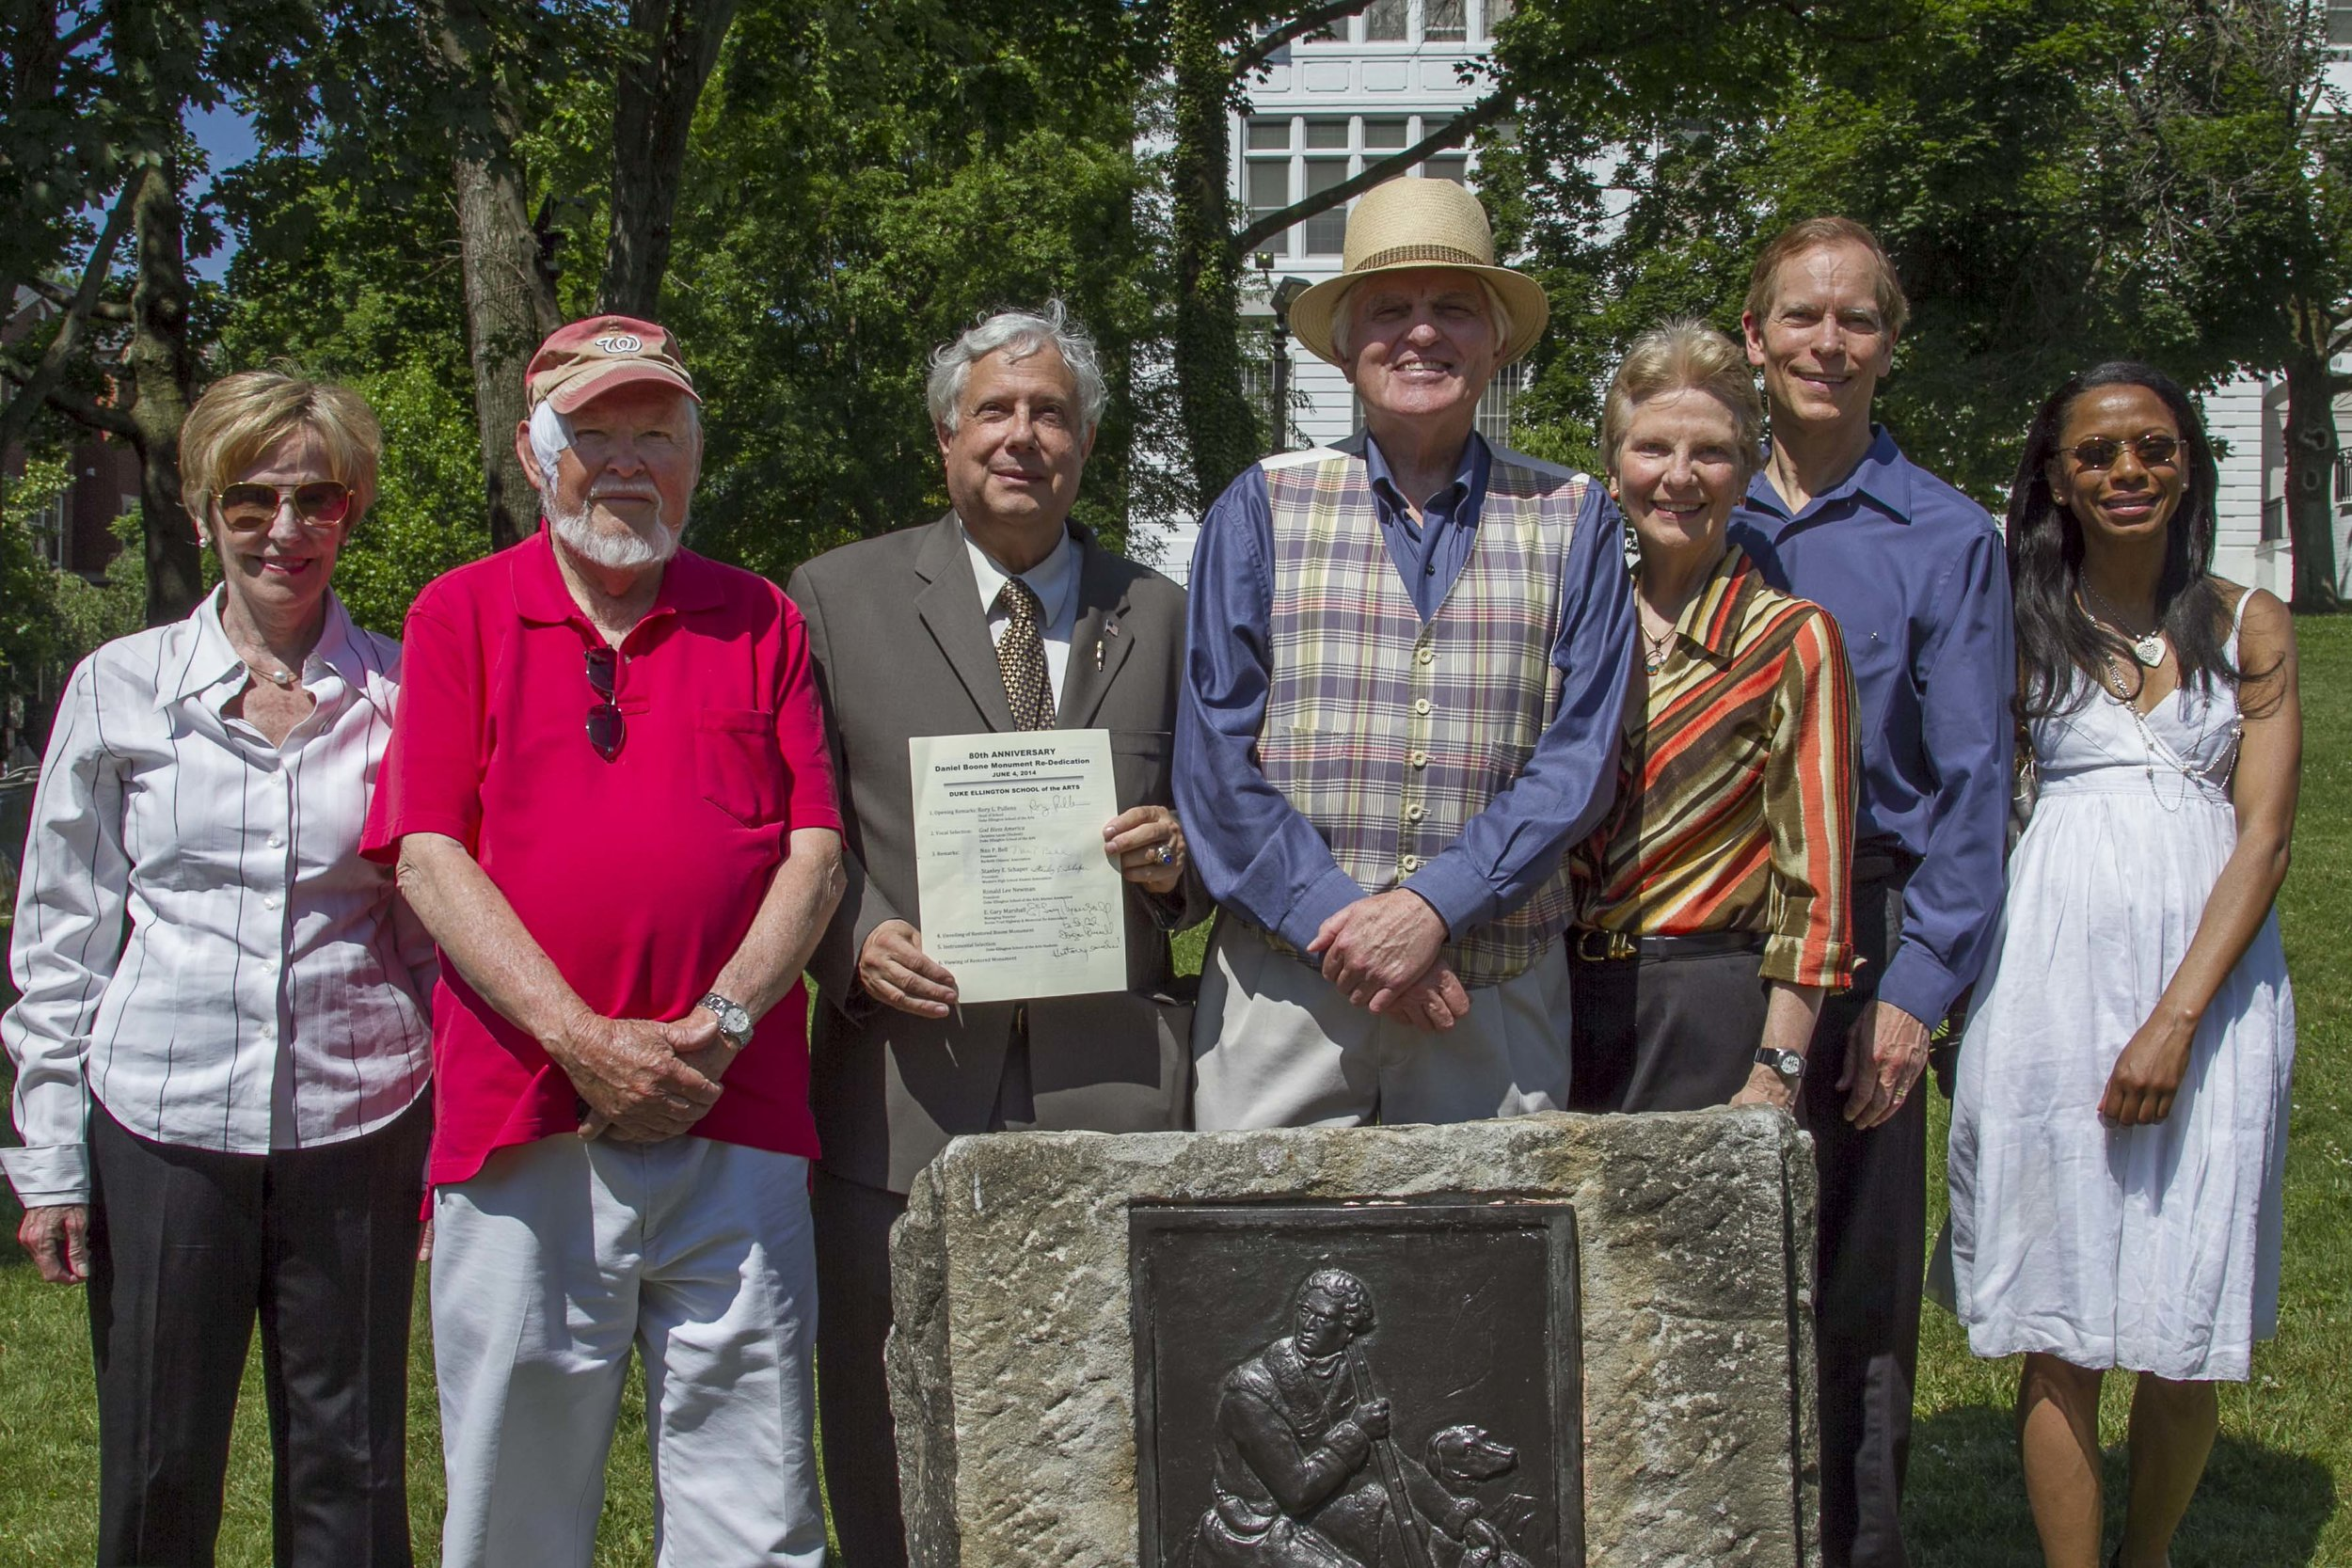 Unveiling of the restored Daniel Boone monument on June 4, 2014, just six months before the groundbreaking ceremony for the Ellington modernization. the monument is at the corner of 35th and reservoir.